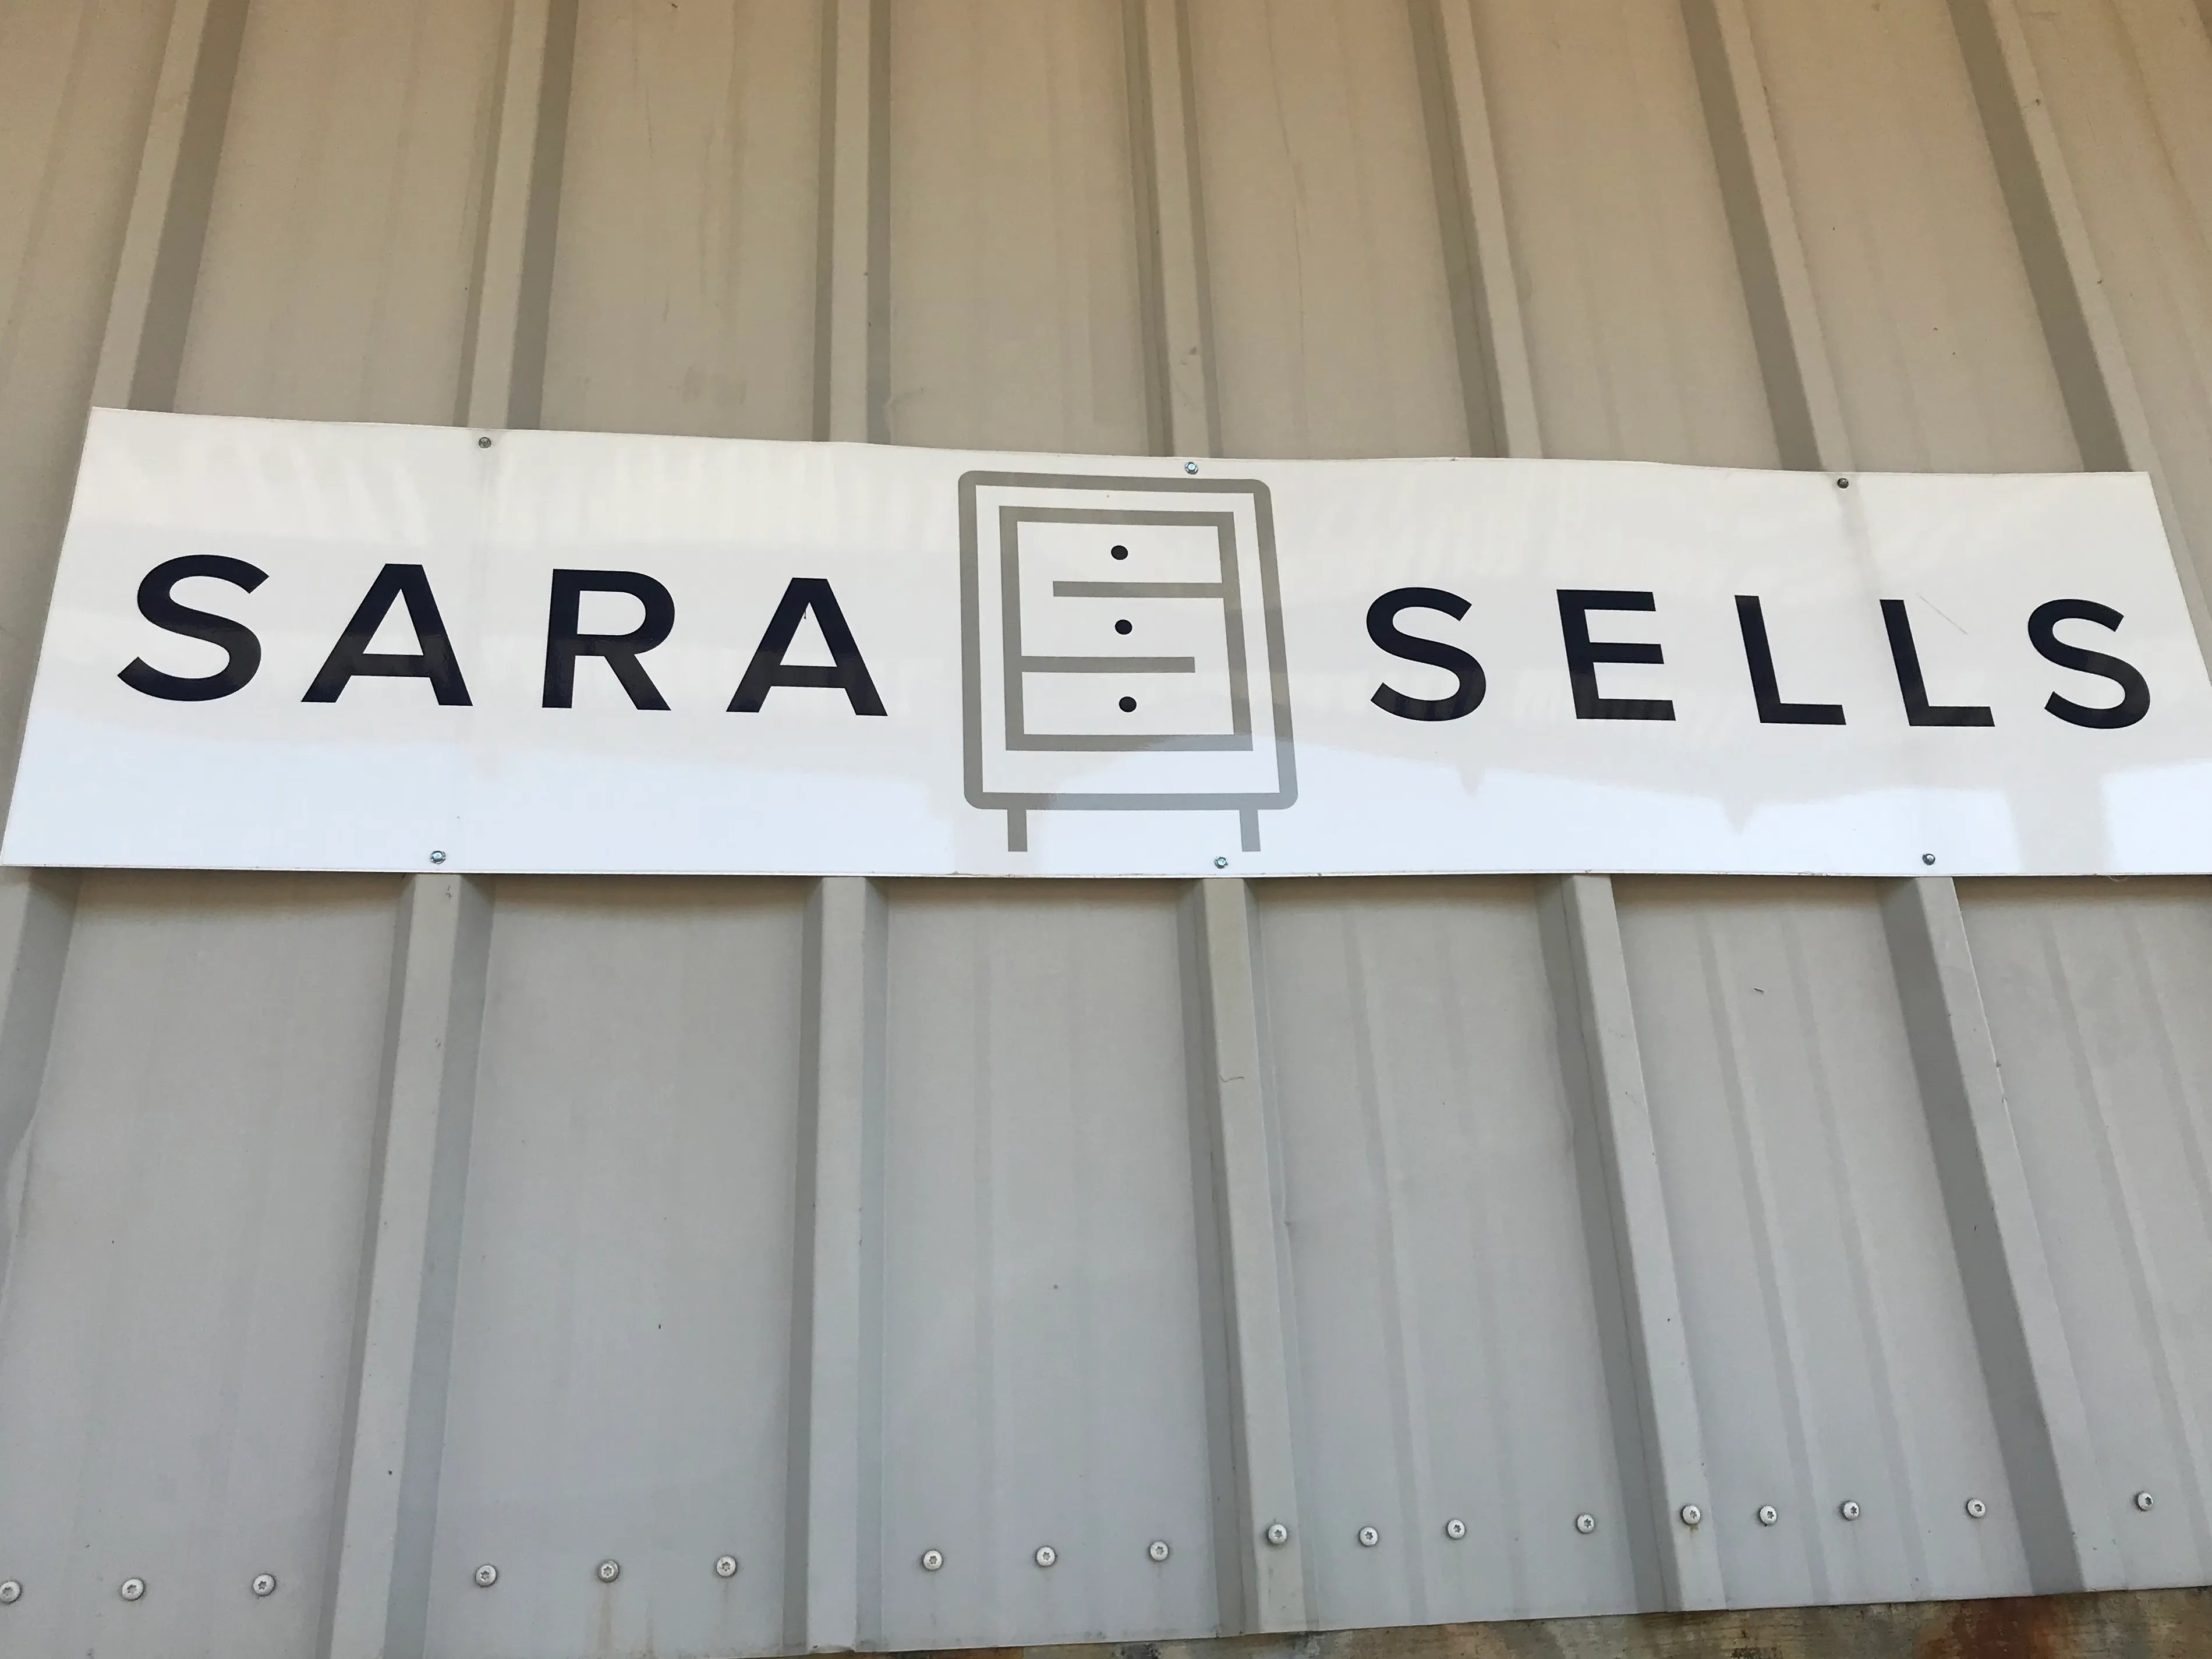 Furniture Stores Discounts On Home Decor At Sara Sells